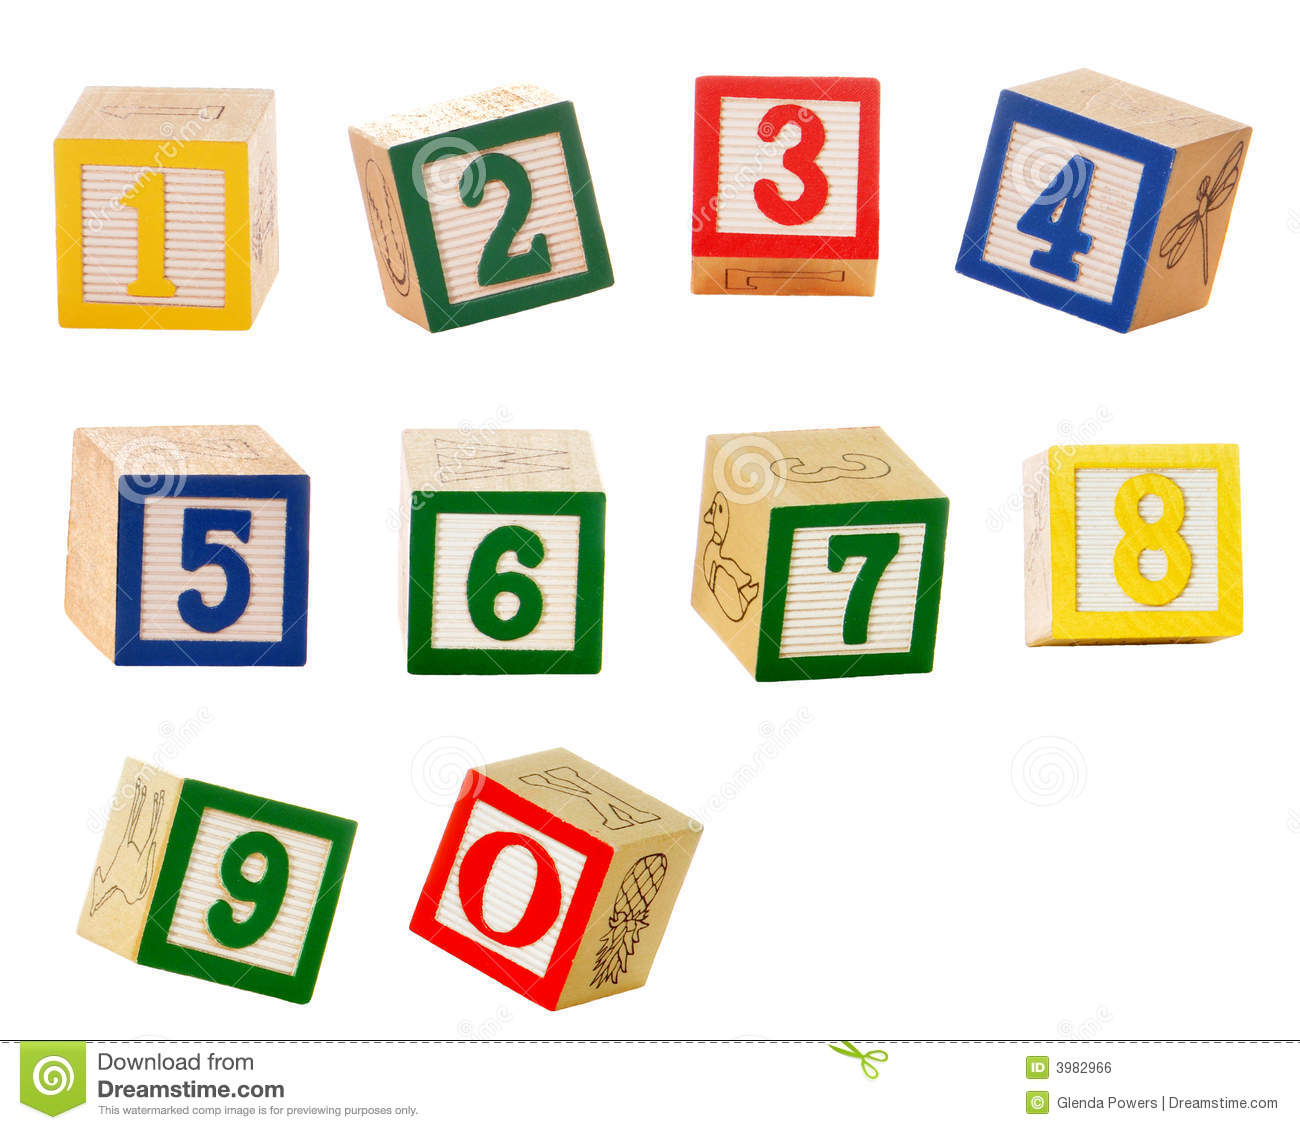 how to remember alphabet numbers